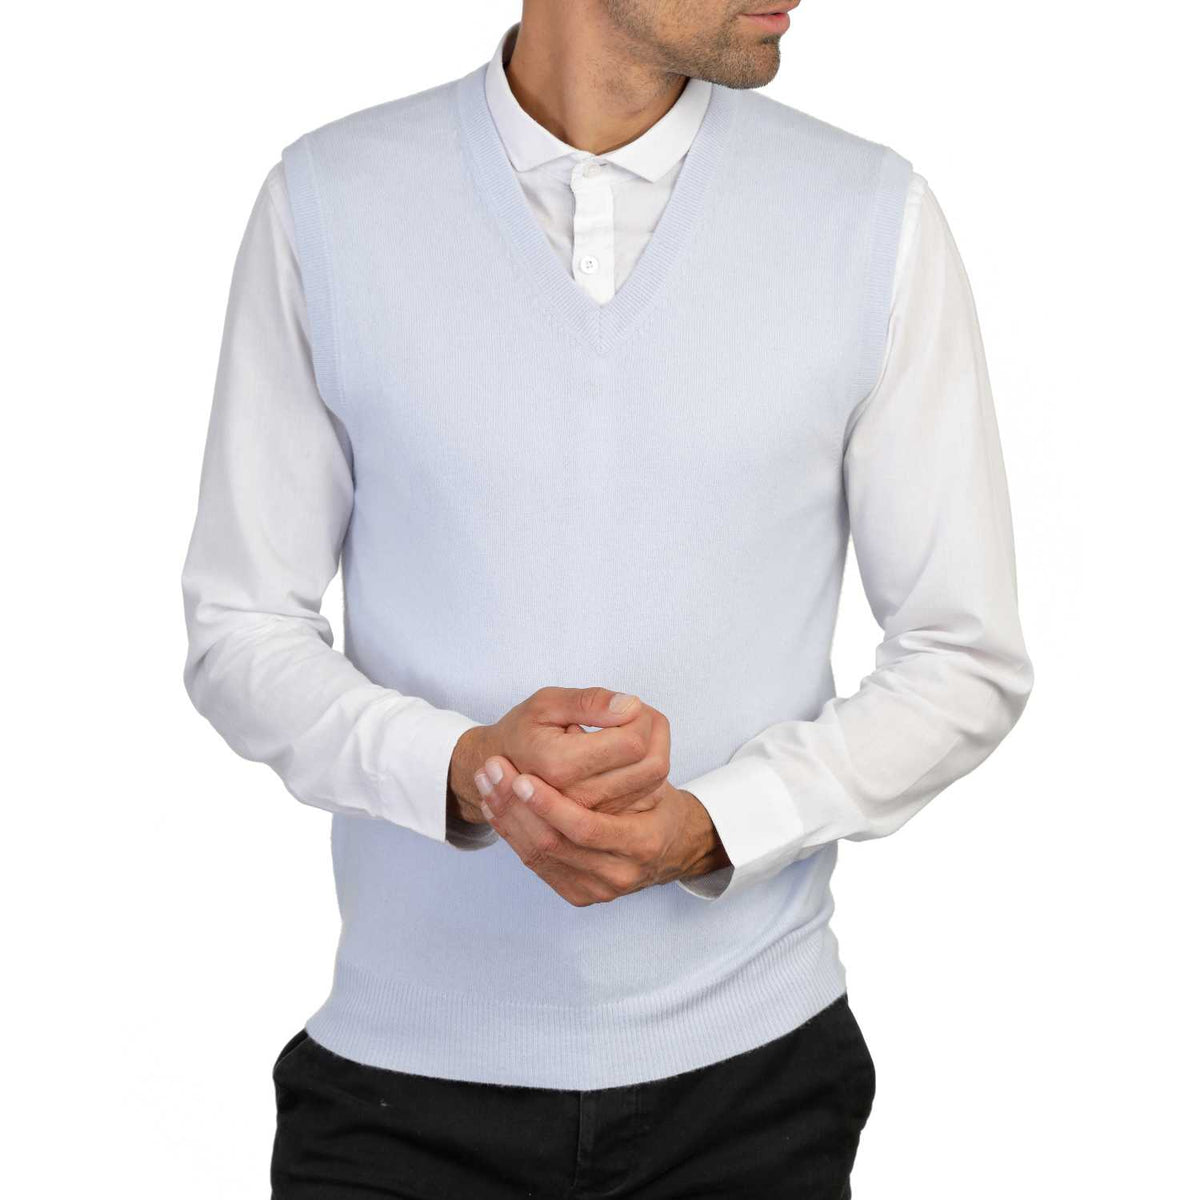 Mens Pale Blue Cashmere Sleeveless Vest Sweater | Front | Shop at The Cashmere Choice | London